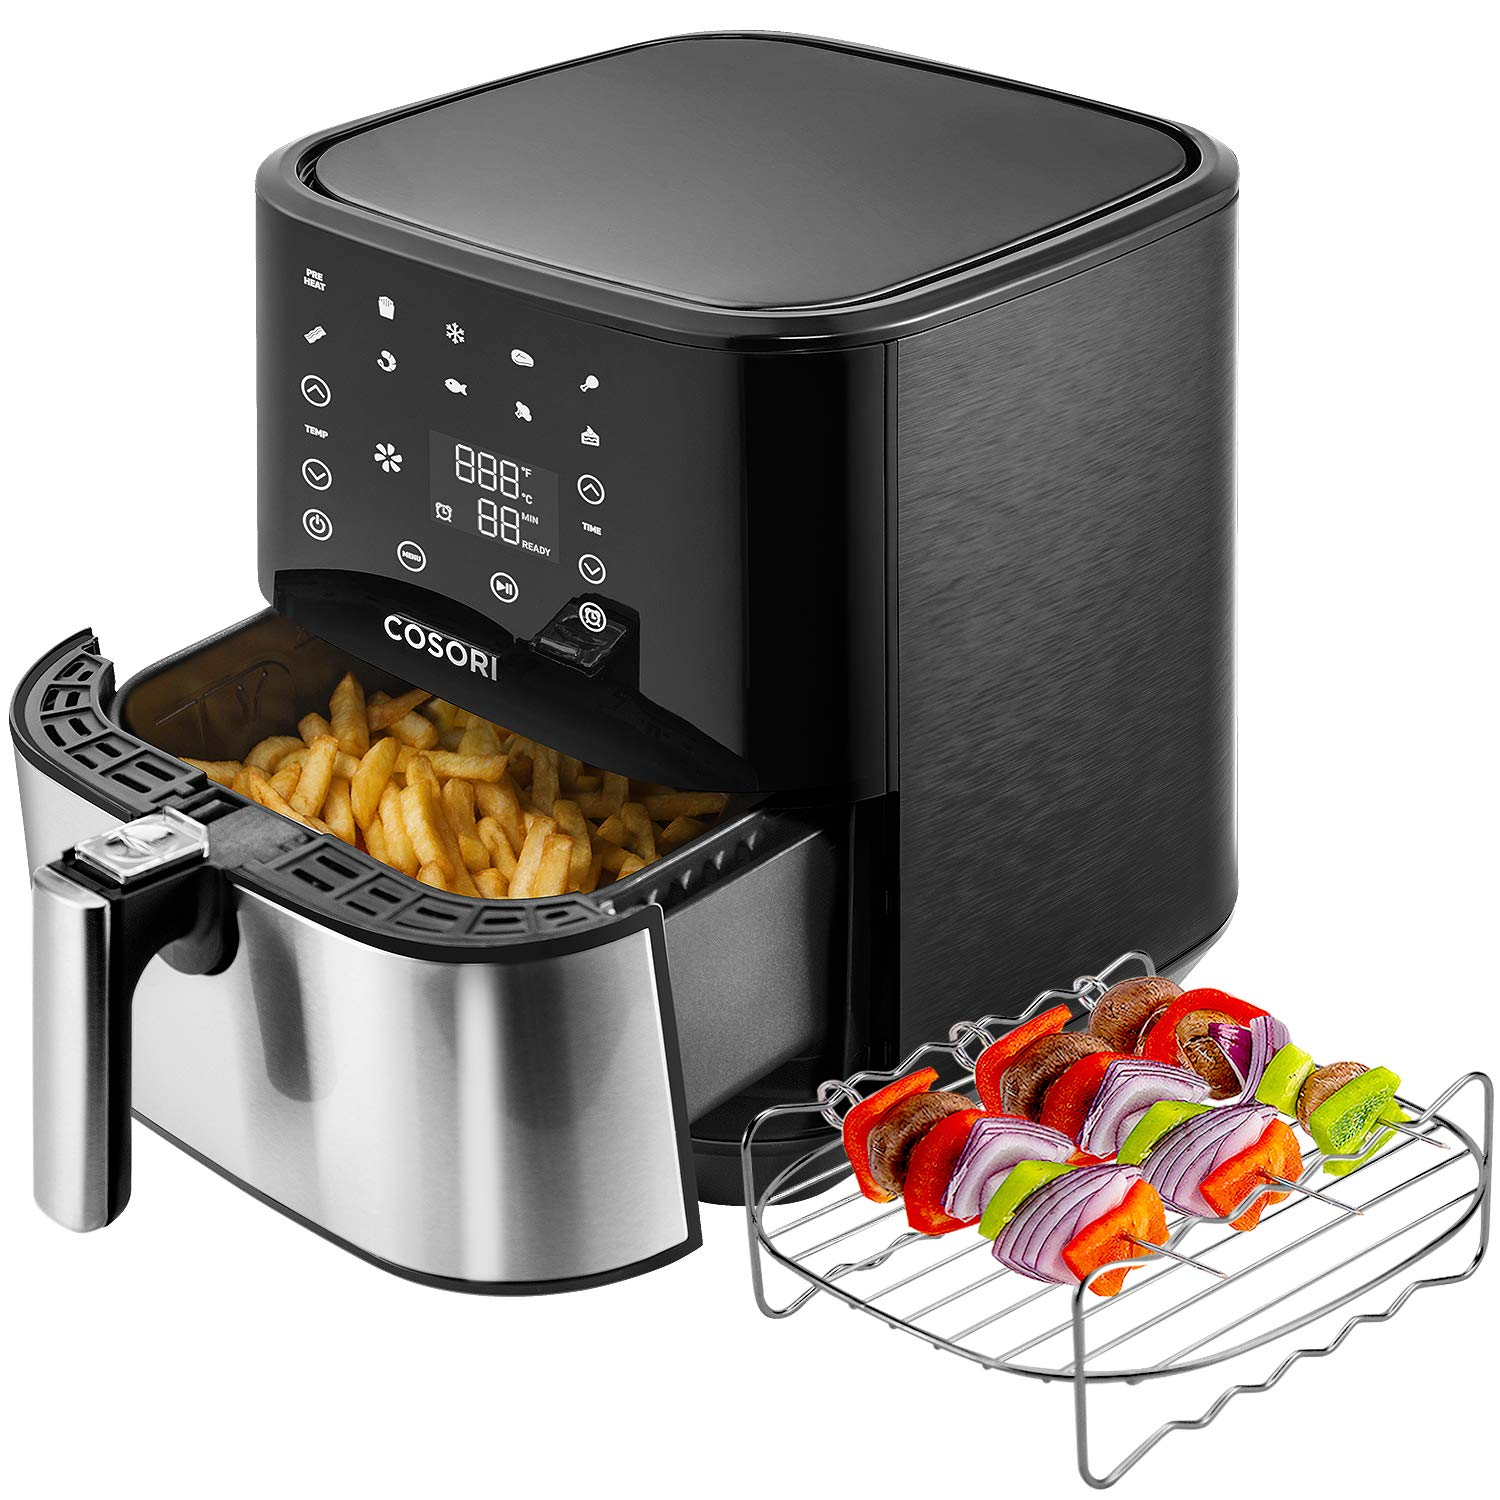 COSORI Stainless Steel Air Fryer (100 Recipes, Rack & 5 Skewers), 5.8Qt Large Air Fryers XL Oven Oilless Cooker, Preheat/Alarm Reminder, 9 Presets, Nonstick Basket, 2-Year Warranty, ETL/UL Listed by COSORI